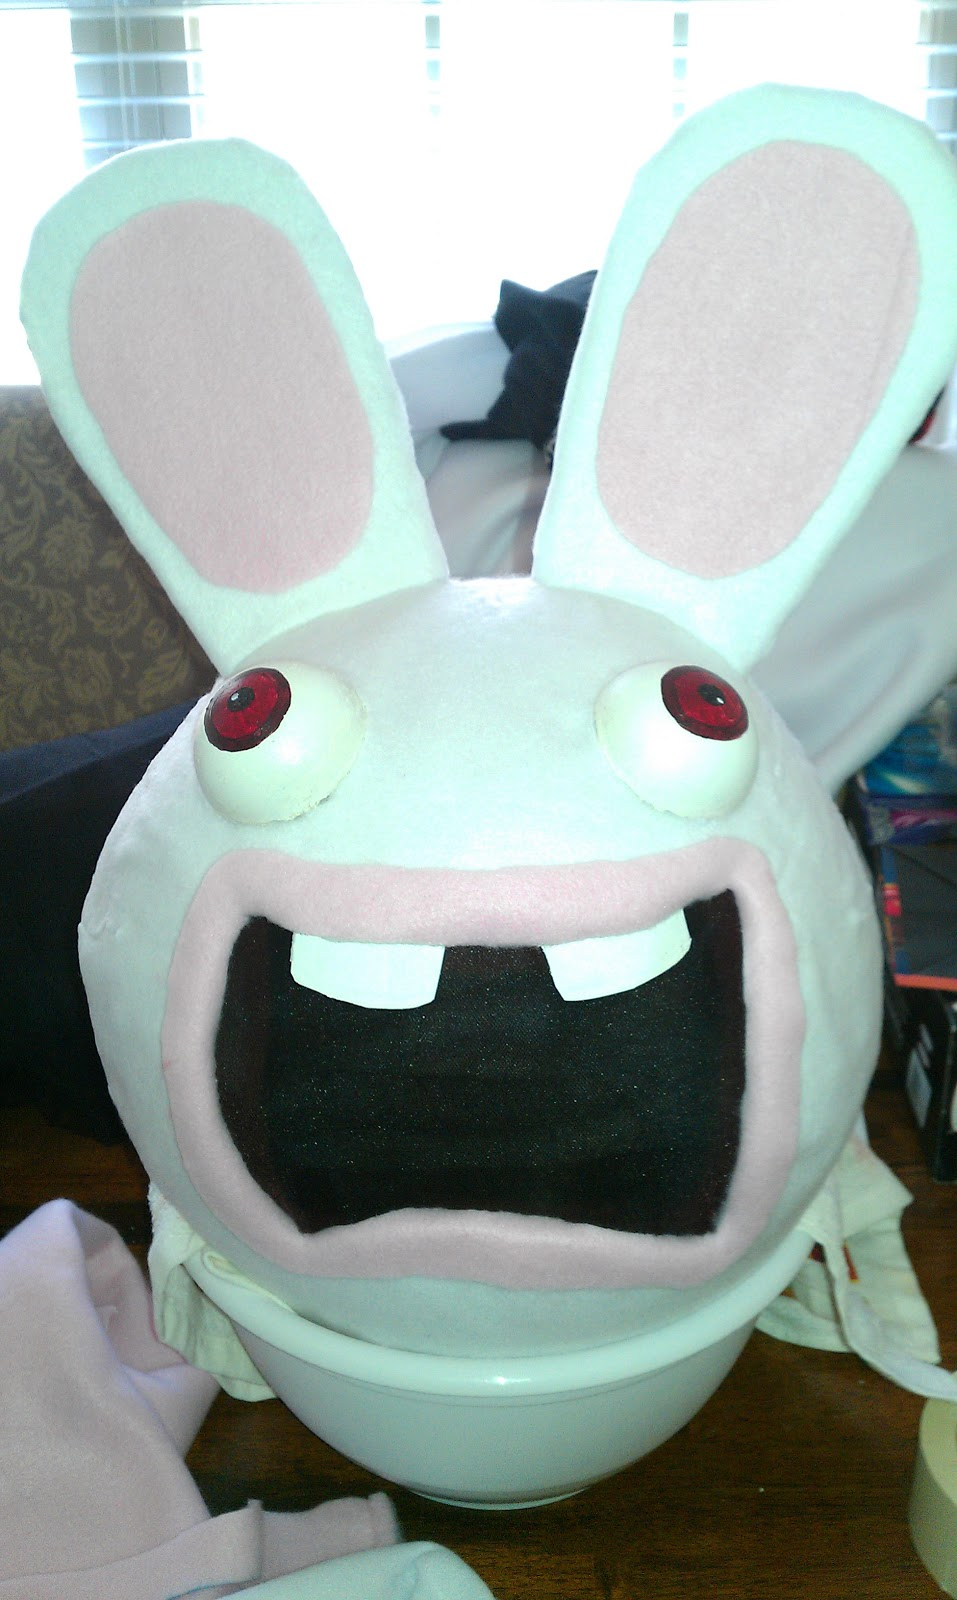 moonruffle the boychilds raving rabbid costume - Raving Rabbids Halloween Costume